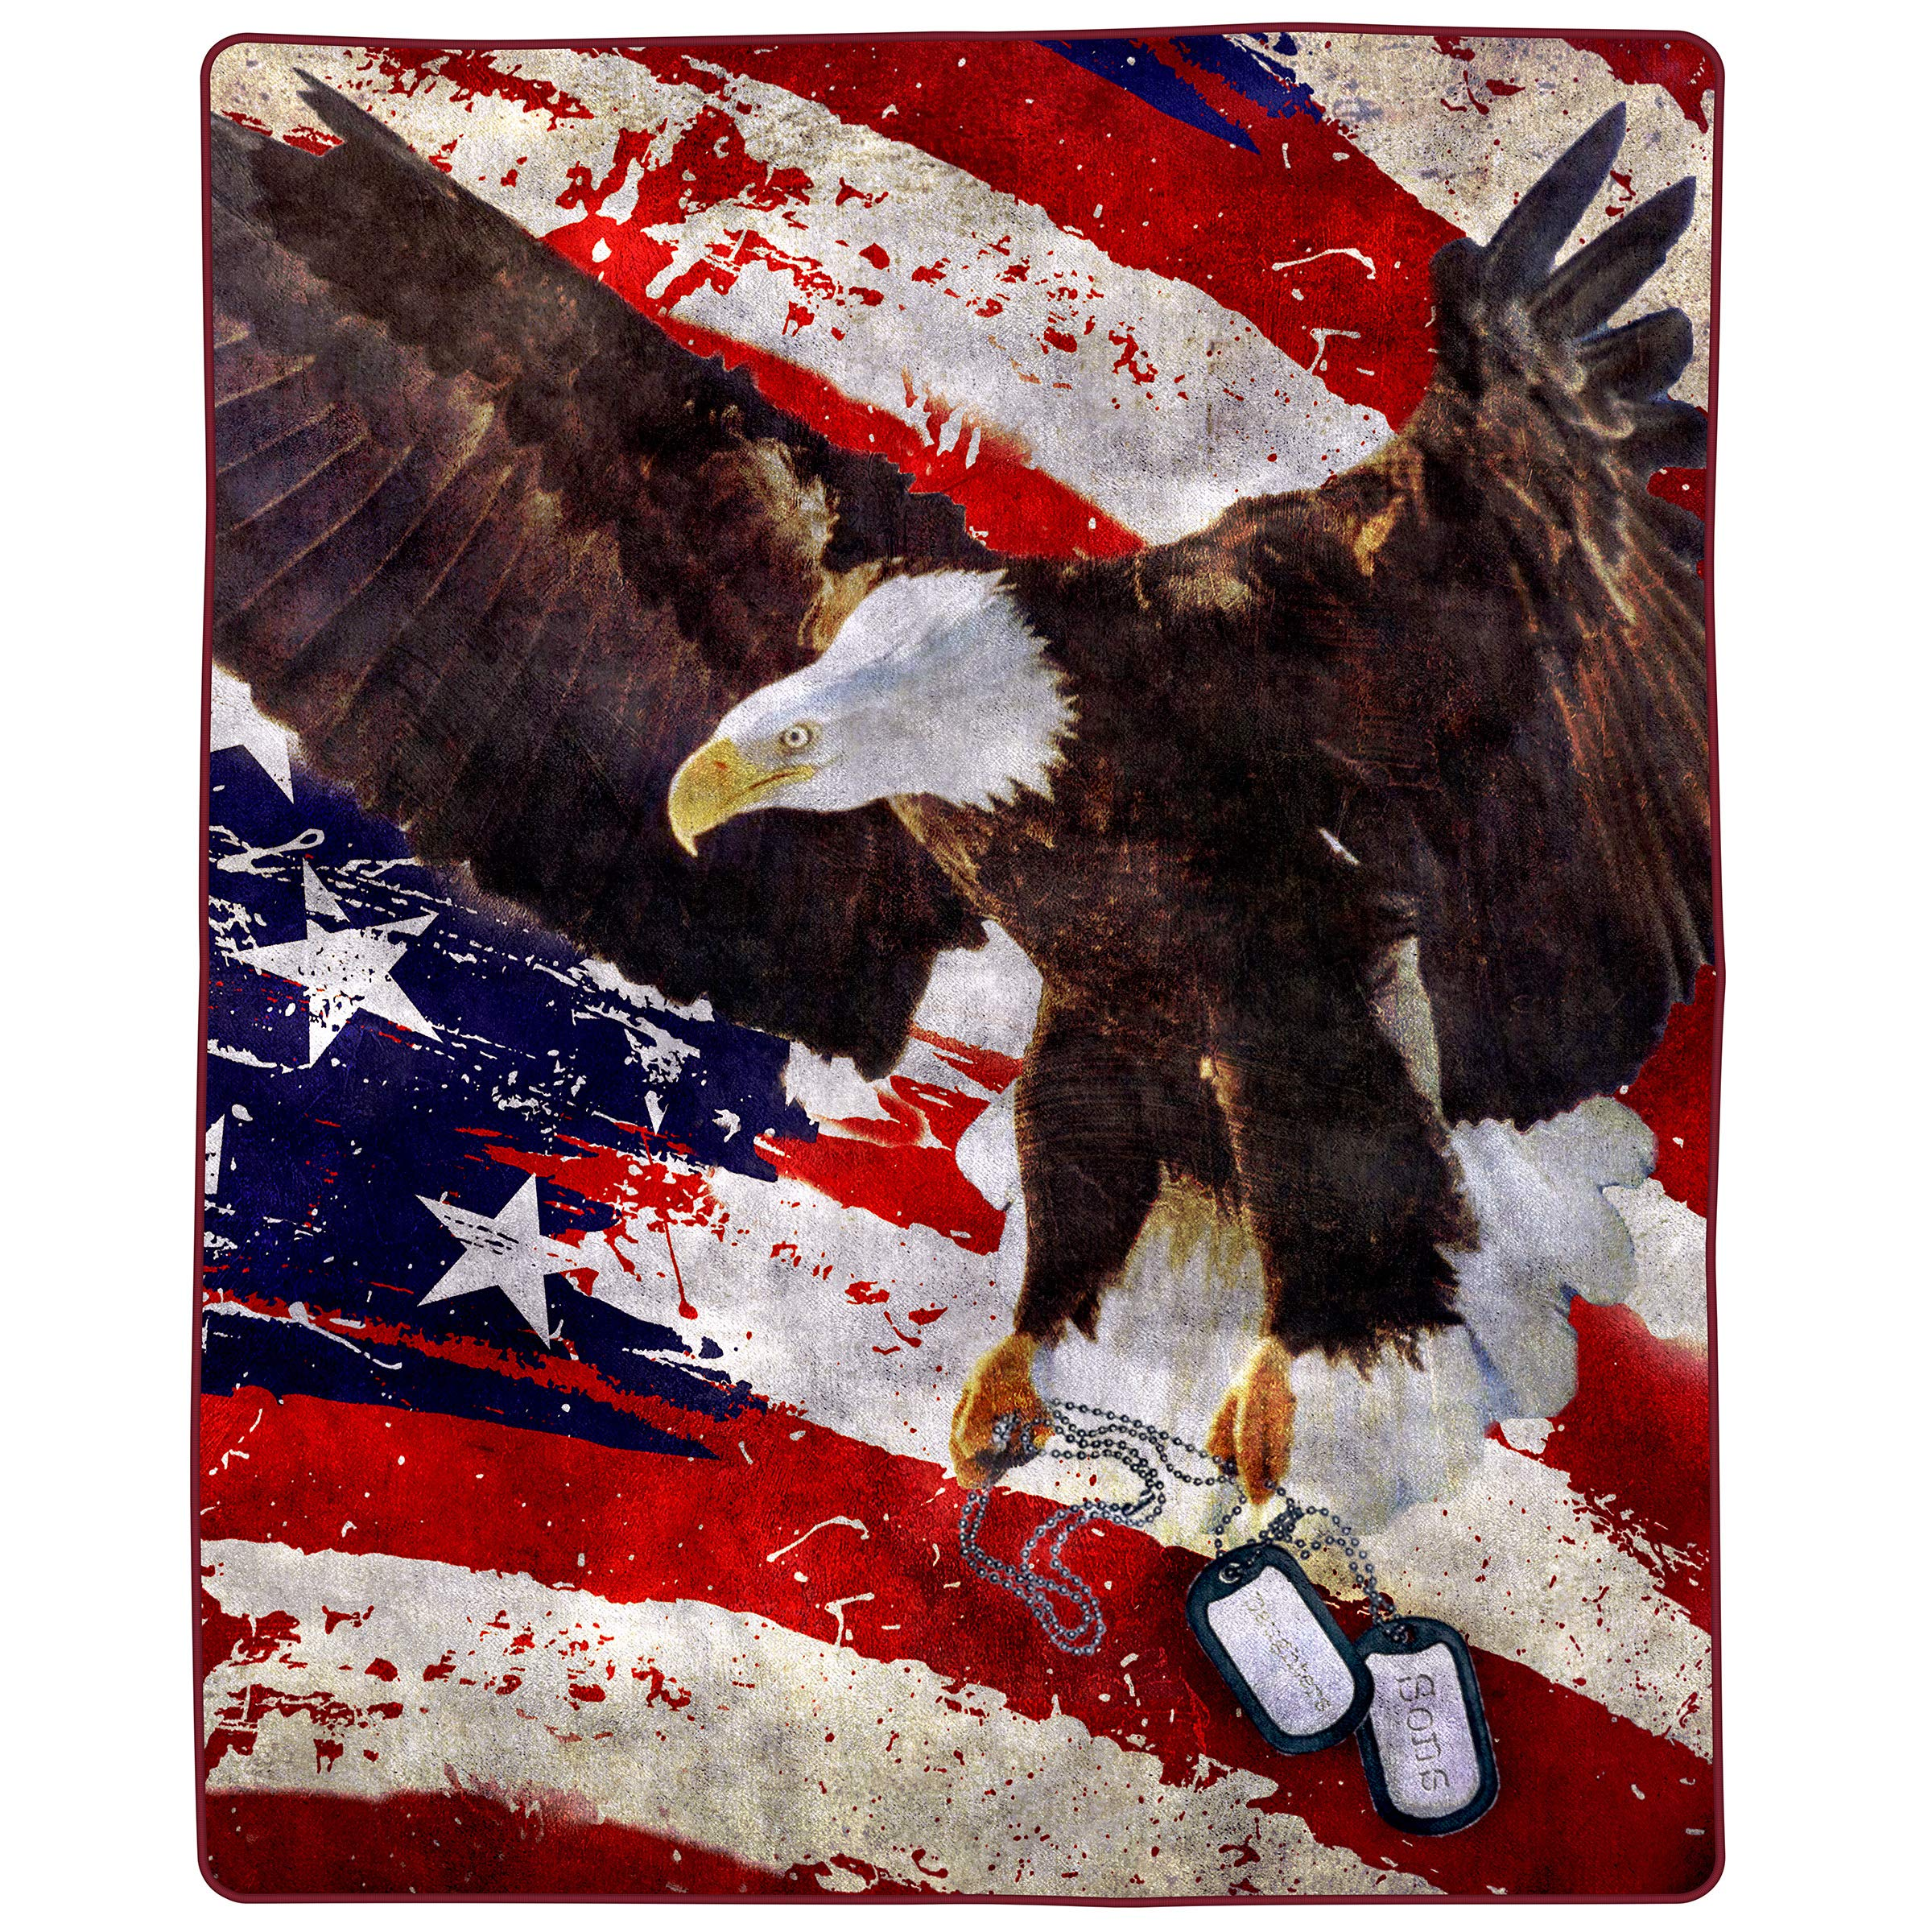 Bedford Home 8 Lb Throw Blanket - Oversized Woven Plush Sofa or Soft Comfort Bed Decor with Printed Wildlife Design for Kids and Adults (Bald Eagle)